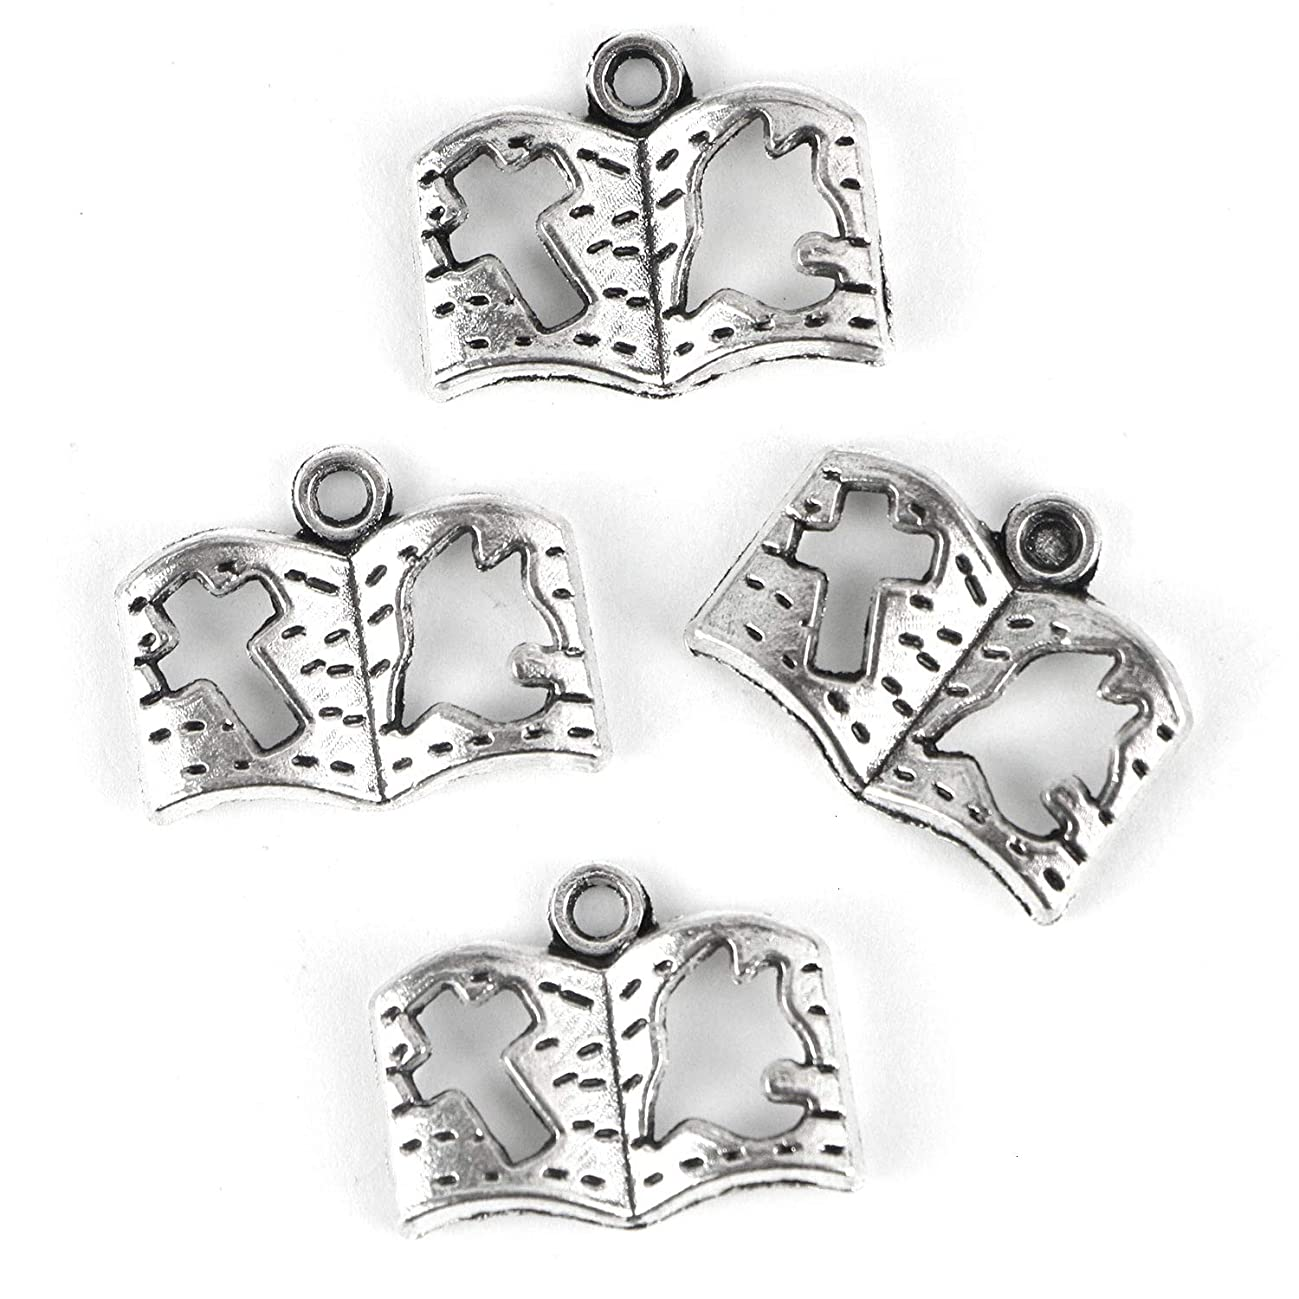 Monrocco 100 Pcs Antique Silver Holy Bible Book Charms Religious Christian Cross Dove Bible Charms for Bracelets Necklace Jewelry Making